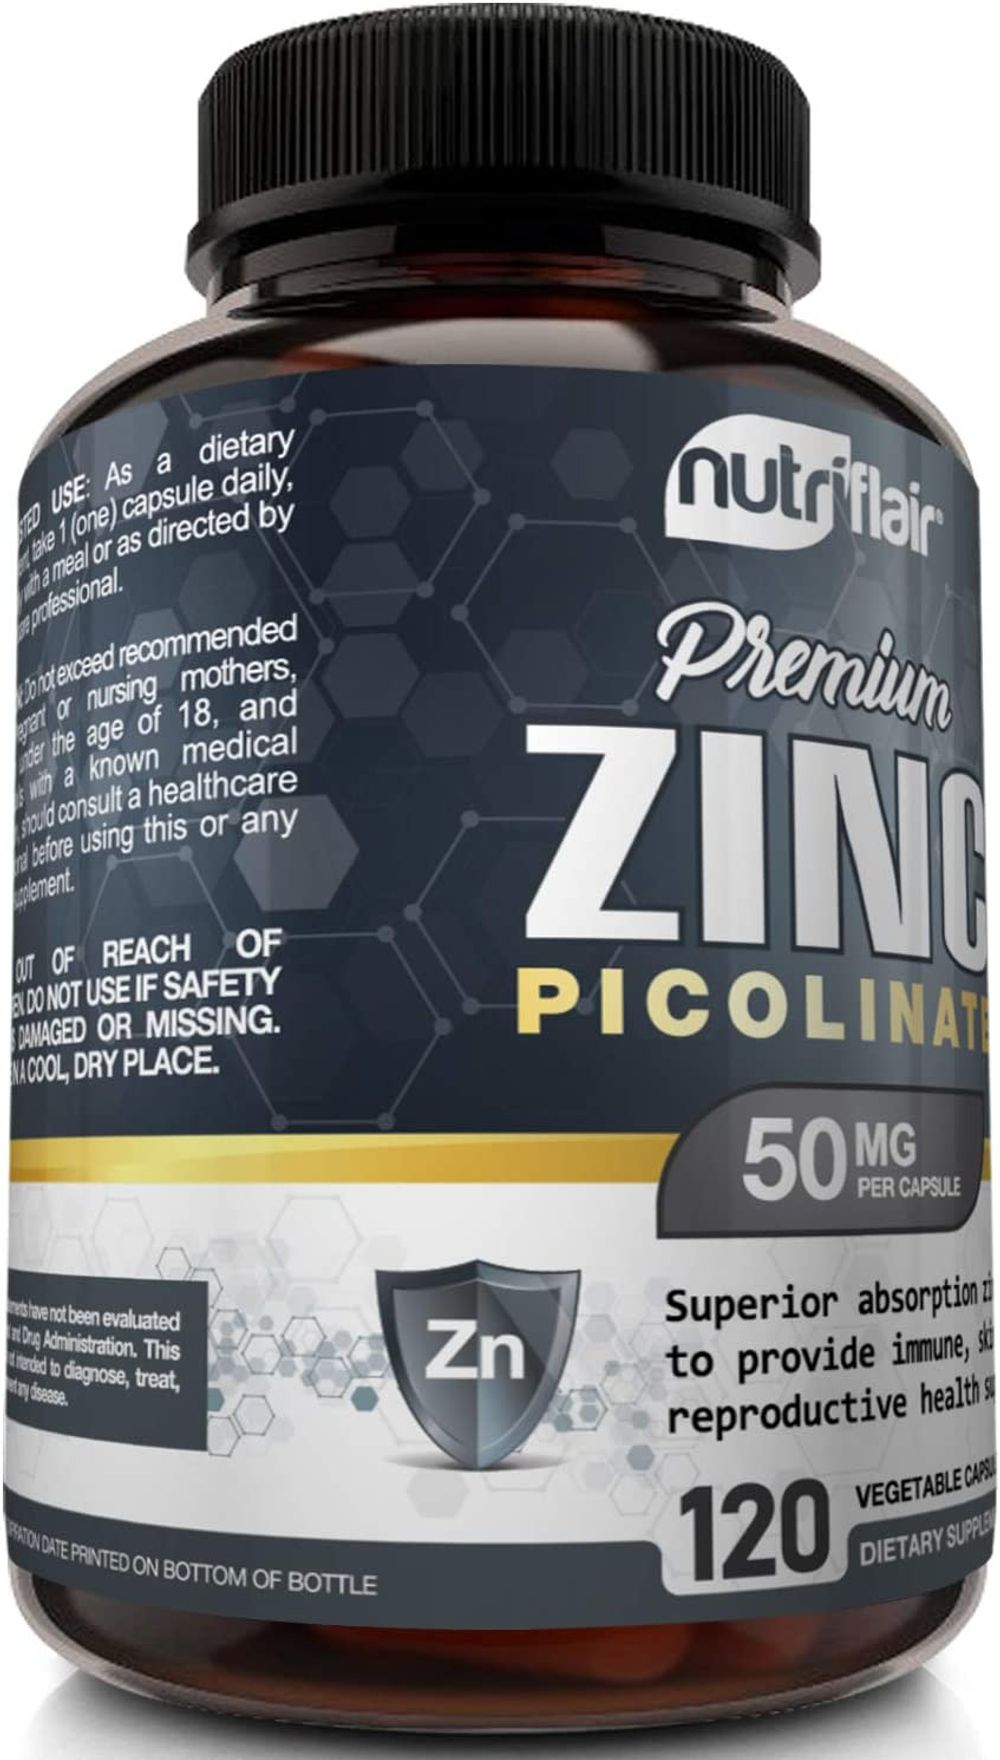 NutriFlair Zinc Picolinate 50mg, 120 Capsules - Maximum Absorption Zinc Supplement Pills - Immune System Booster, Immunity Defense, Powerful Non-GMO Antioxidant - Compare to gluconate, Citrate, Oxide